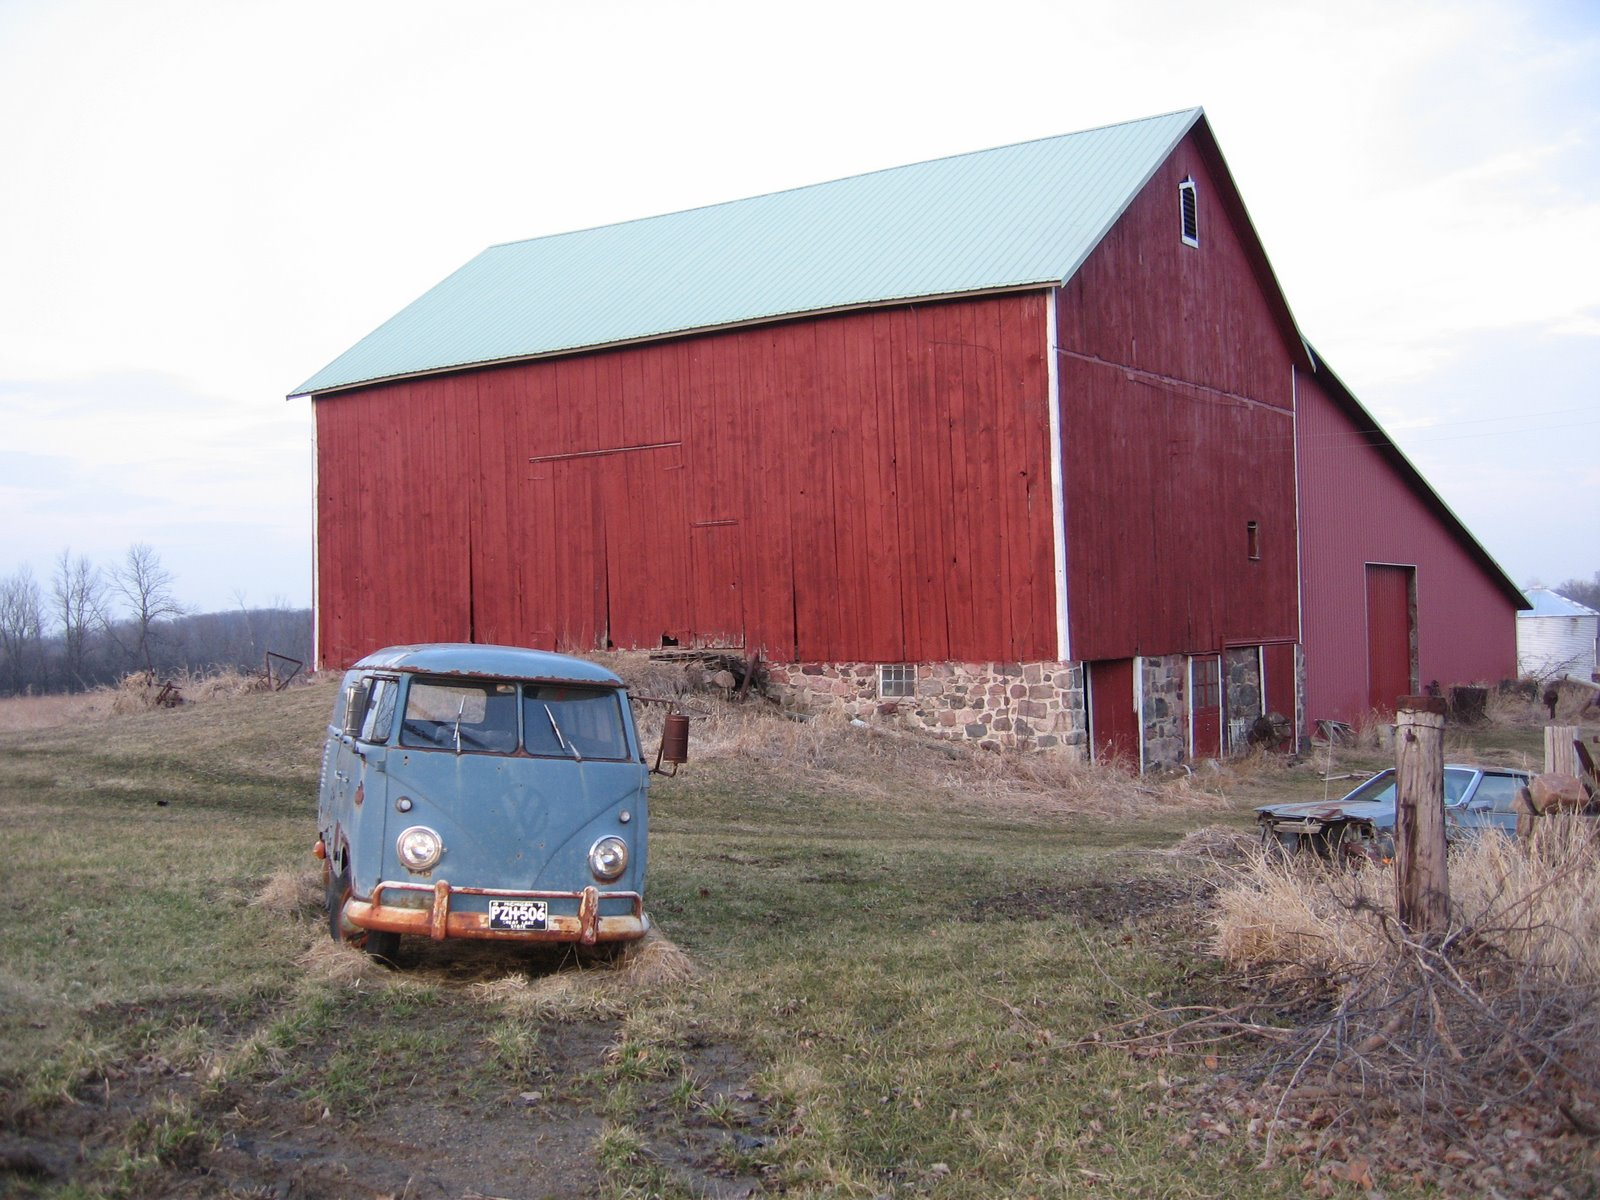 Do Barn Finds Have To Be Parked Inside Of Barns Im Sure This Vintage VW Bus Would Disagree Its Located Or It Was North Ann Arbor Michigan